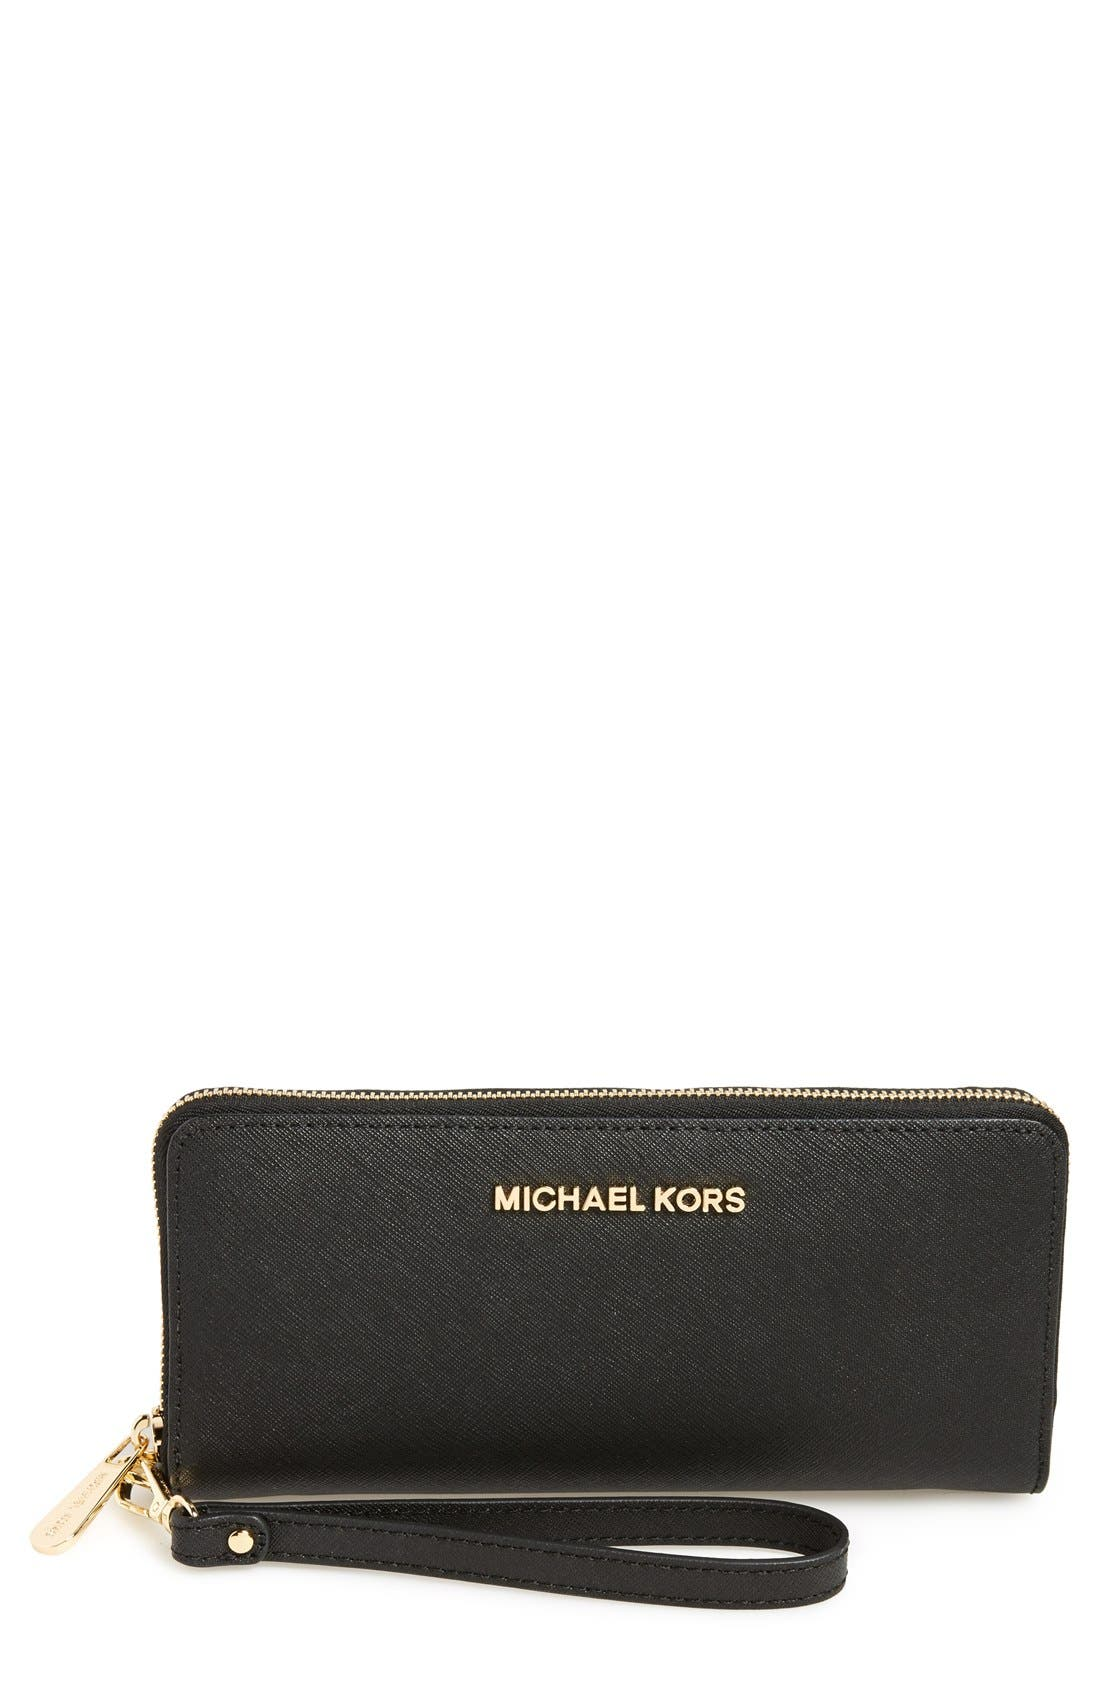 michael kors sale handbags; michael kors monogram handbags; michael kors leather handbag; michael kors silver handbag; michael kors large handbag; michael kors handbags nordstrom rack; Michael Kors Backpacks; Michael Kors Brown Backpacks; Bags Size One Size.